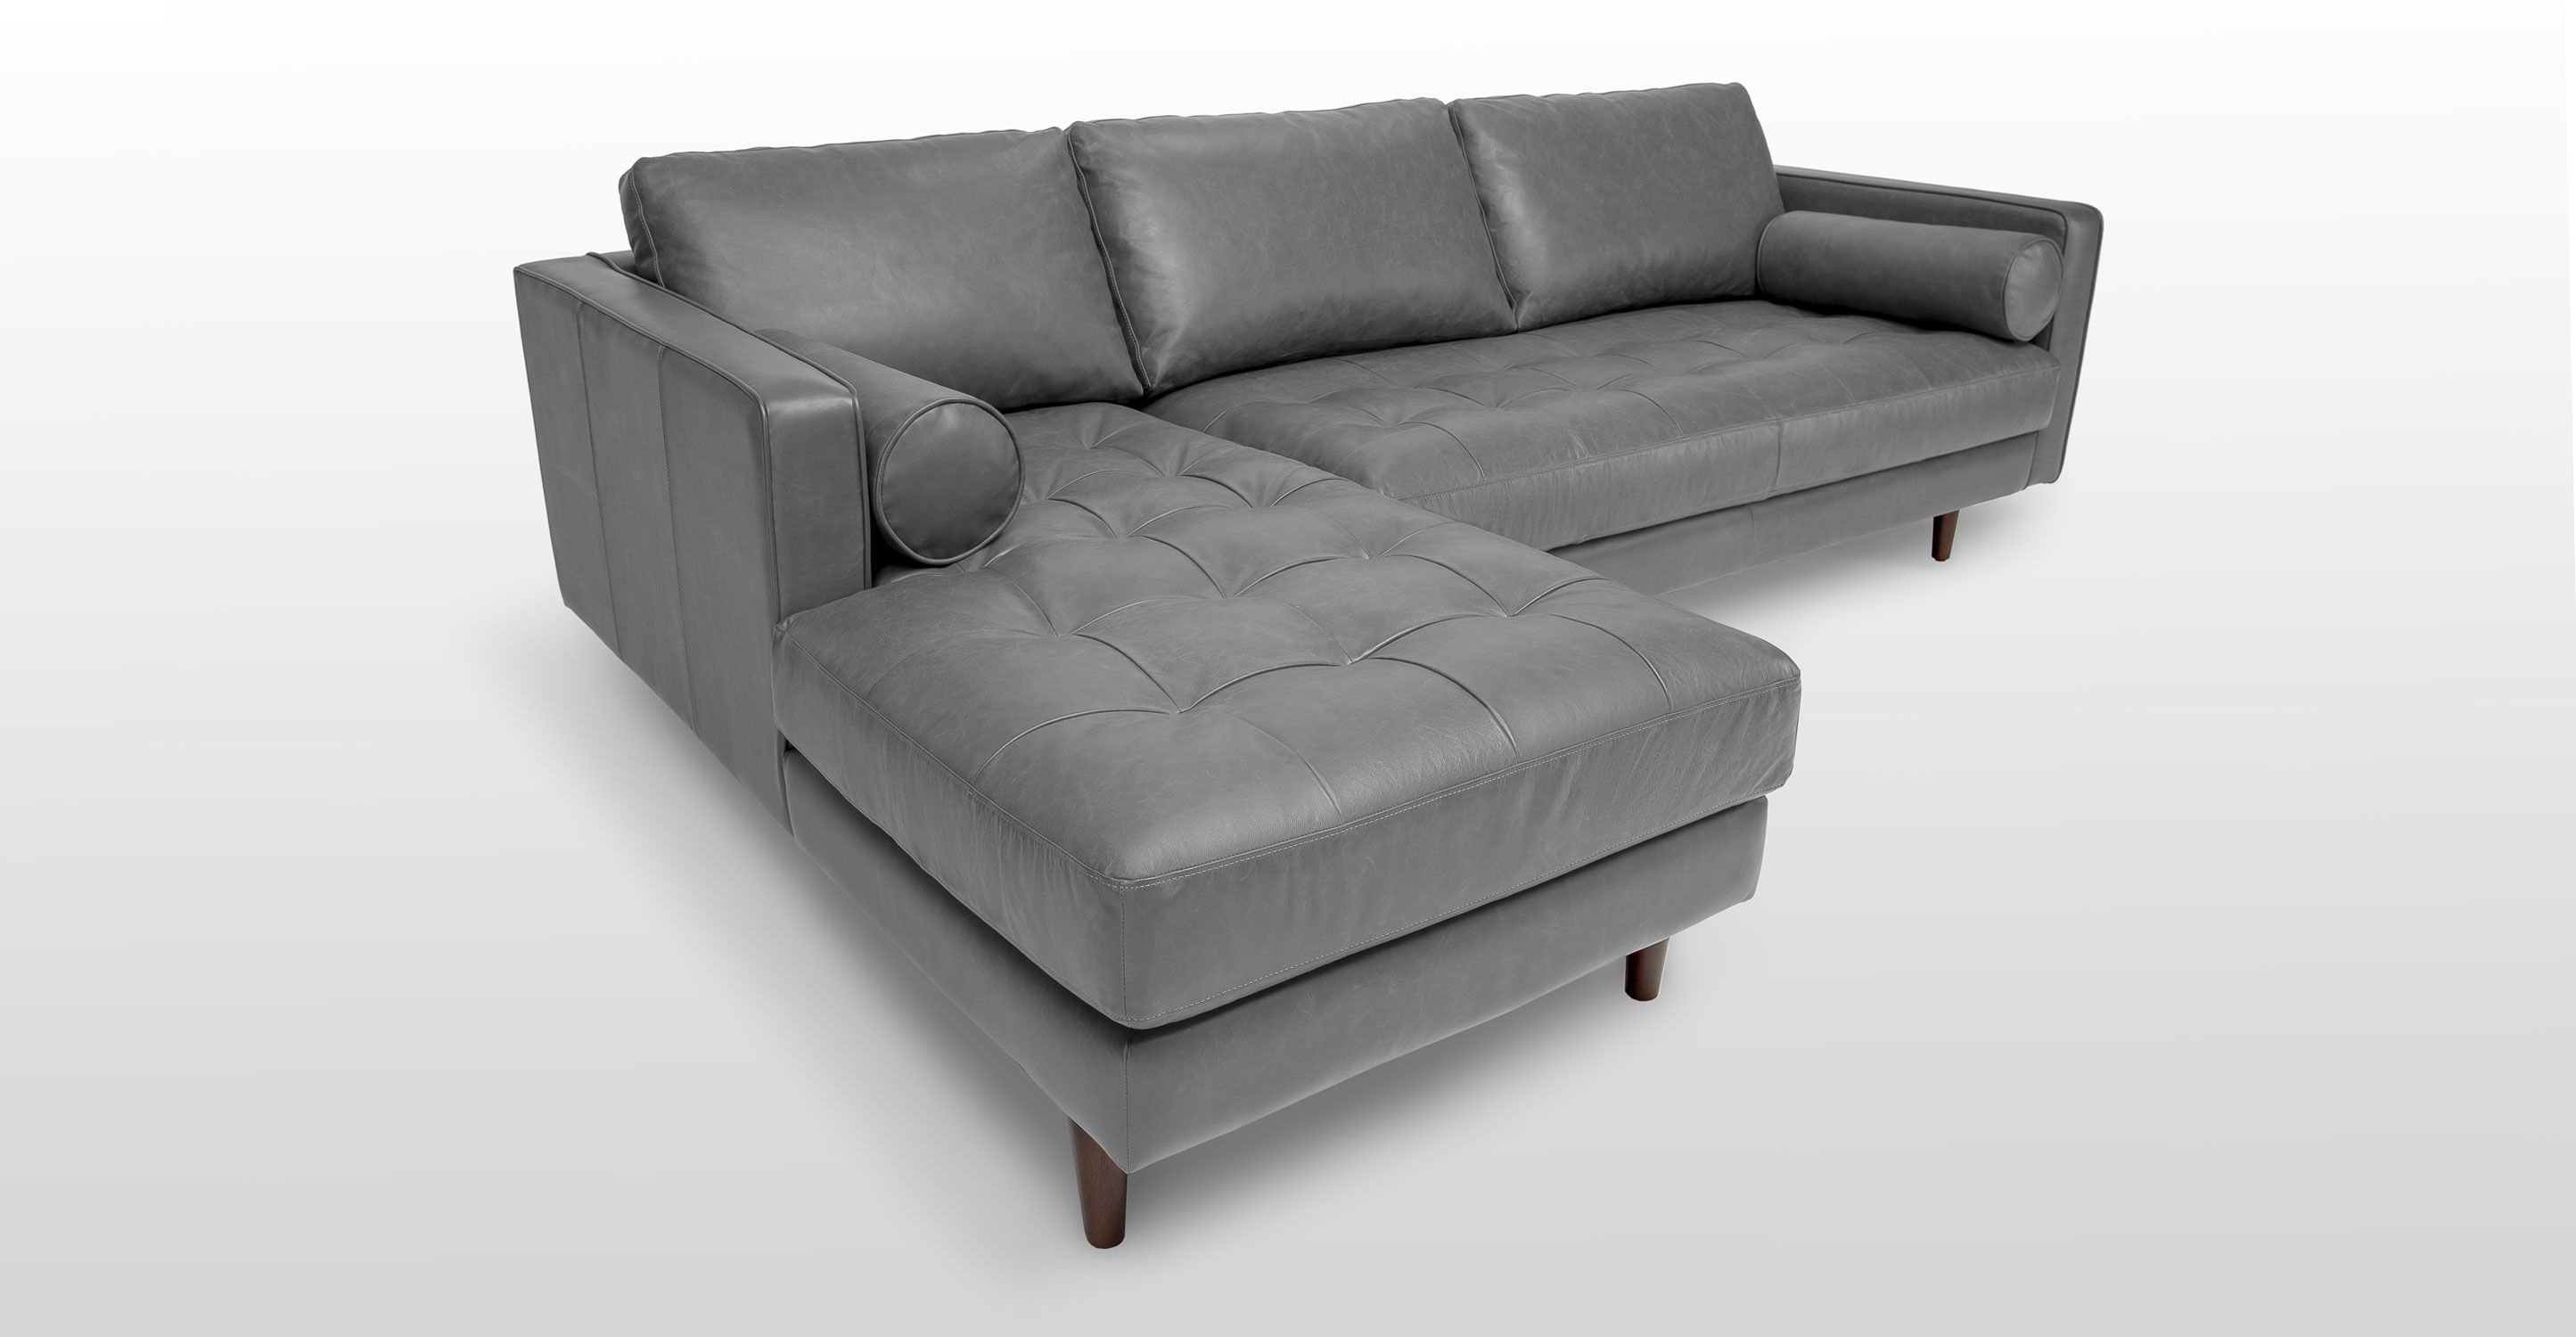 ^ Sven Oxford Gray Left Sectional Sofa Feathers, Sectional sofas ...